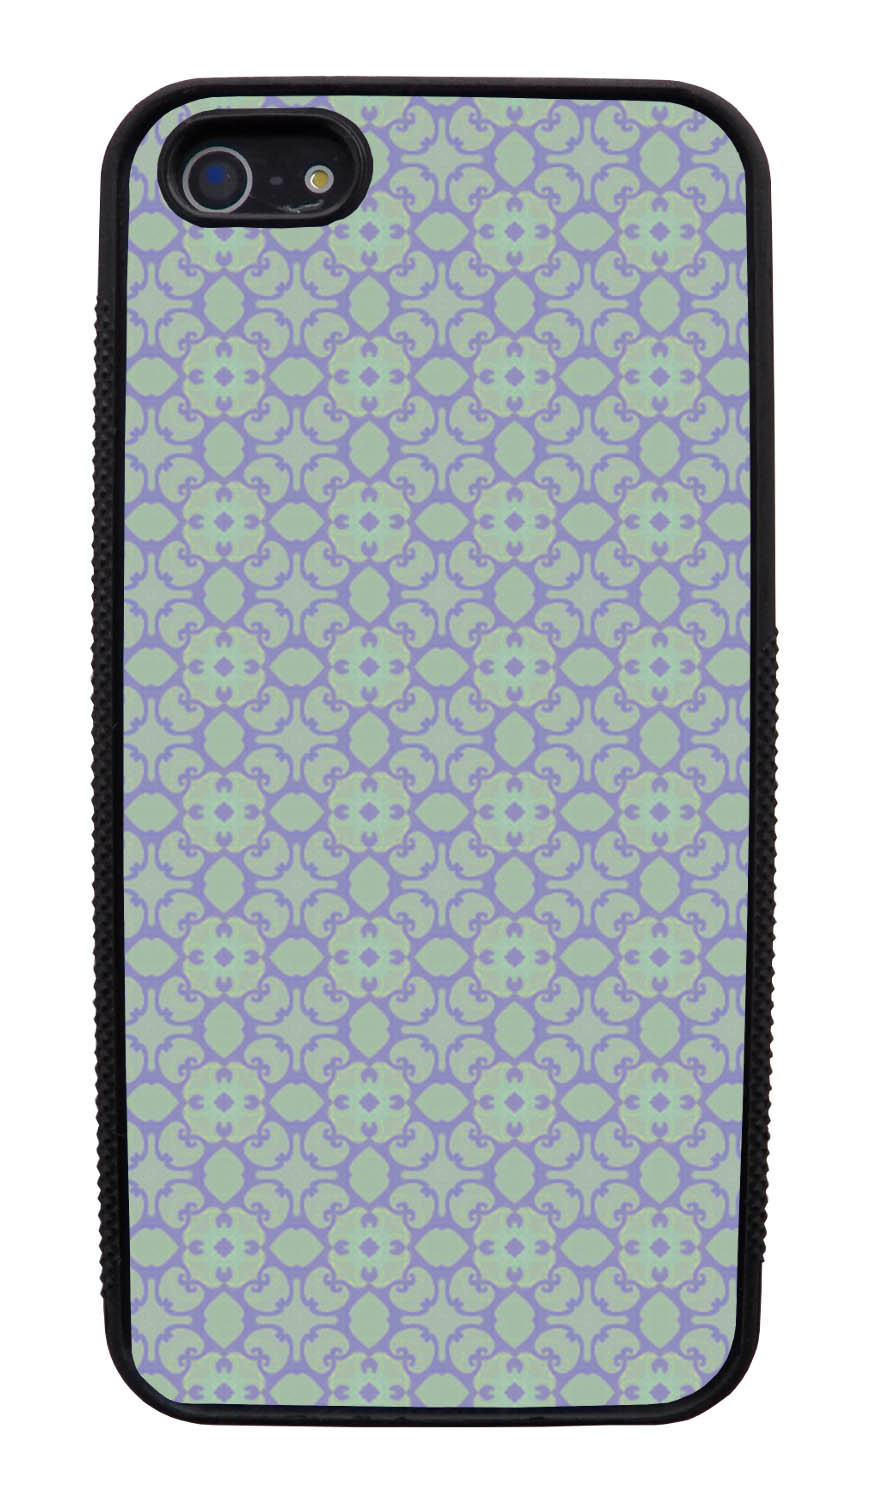 Apple iPhone 5 / 5S Abstract Case - Pale Green - Flower Petal Like - Black Slim Rubber Case